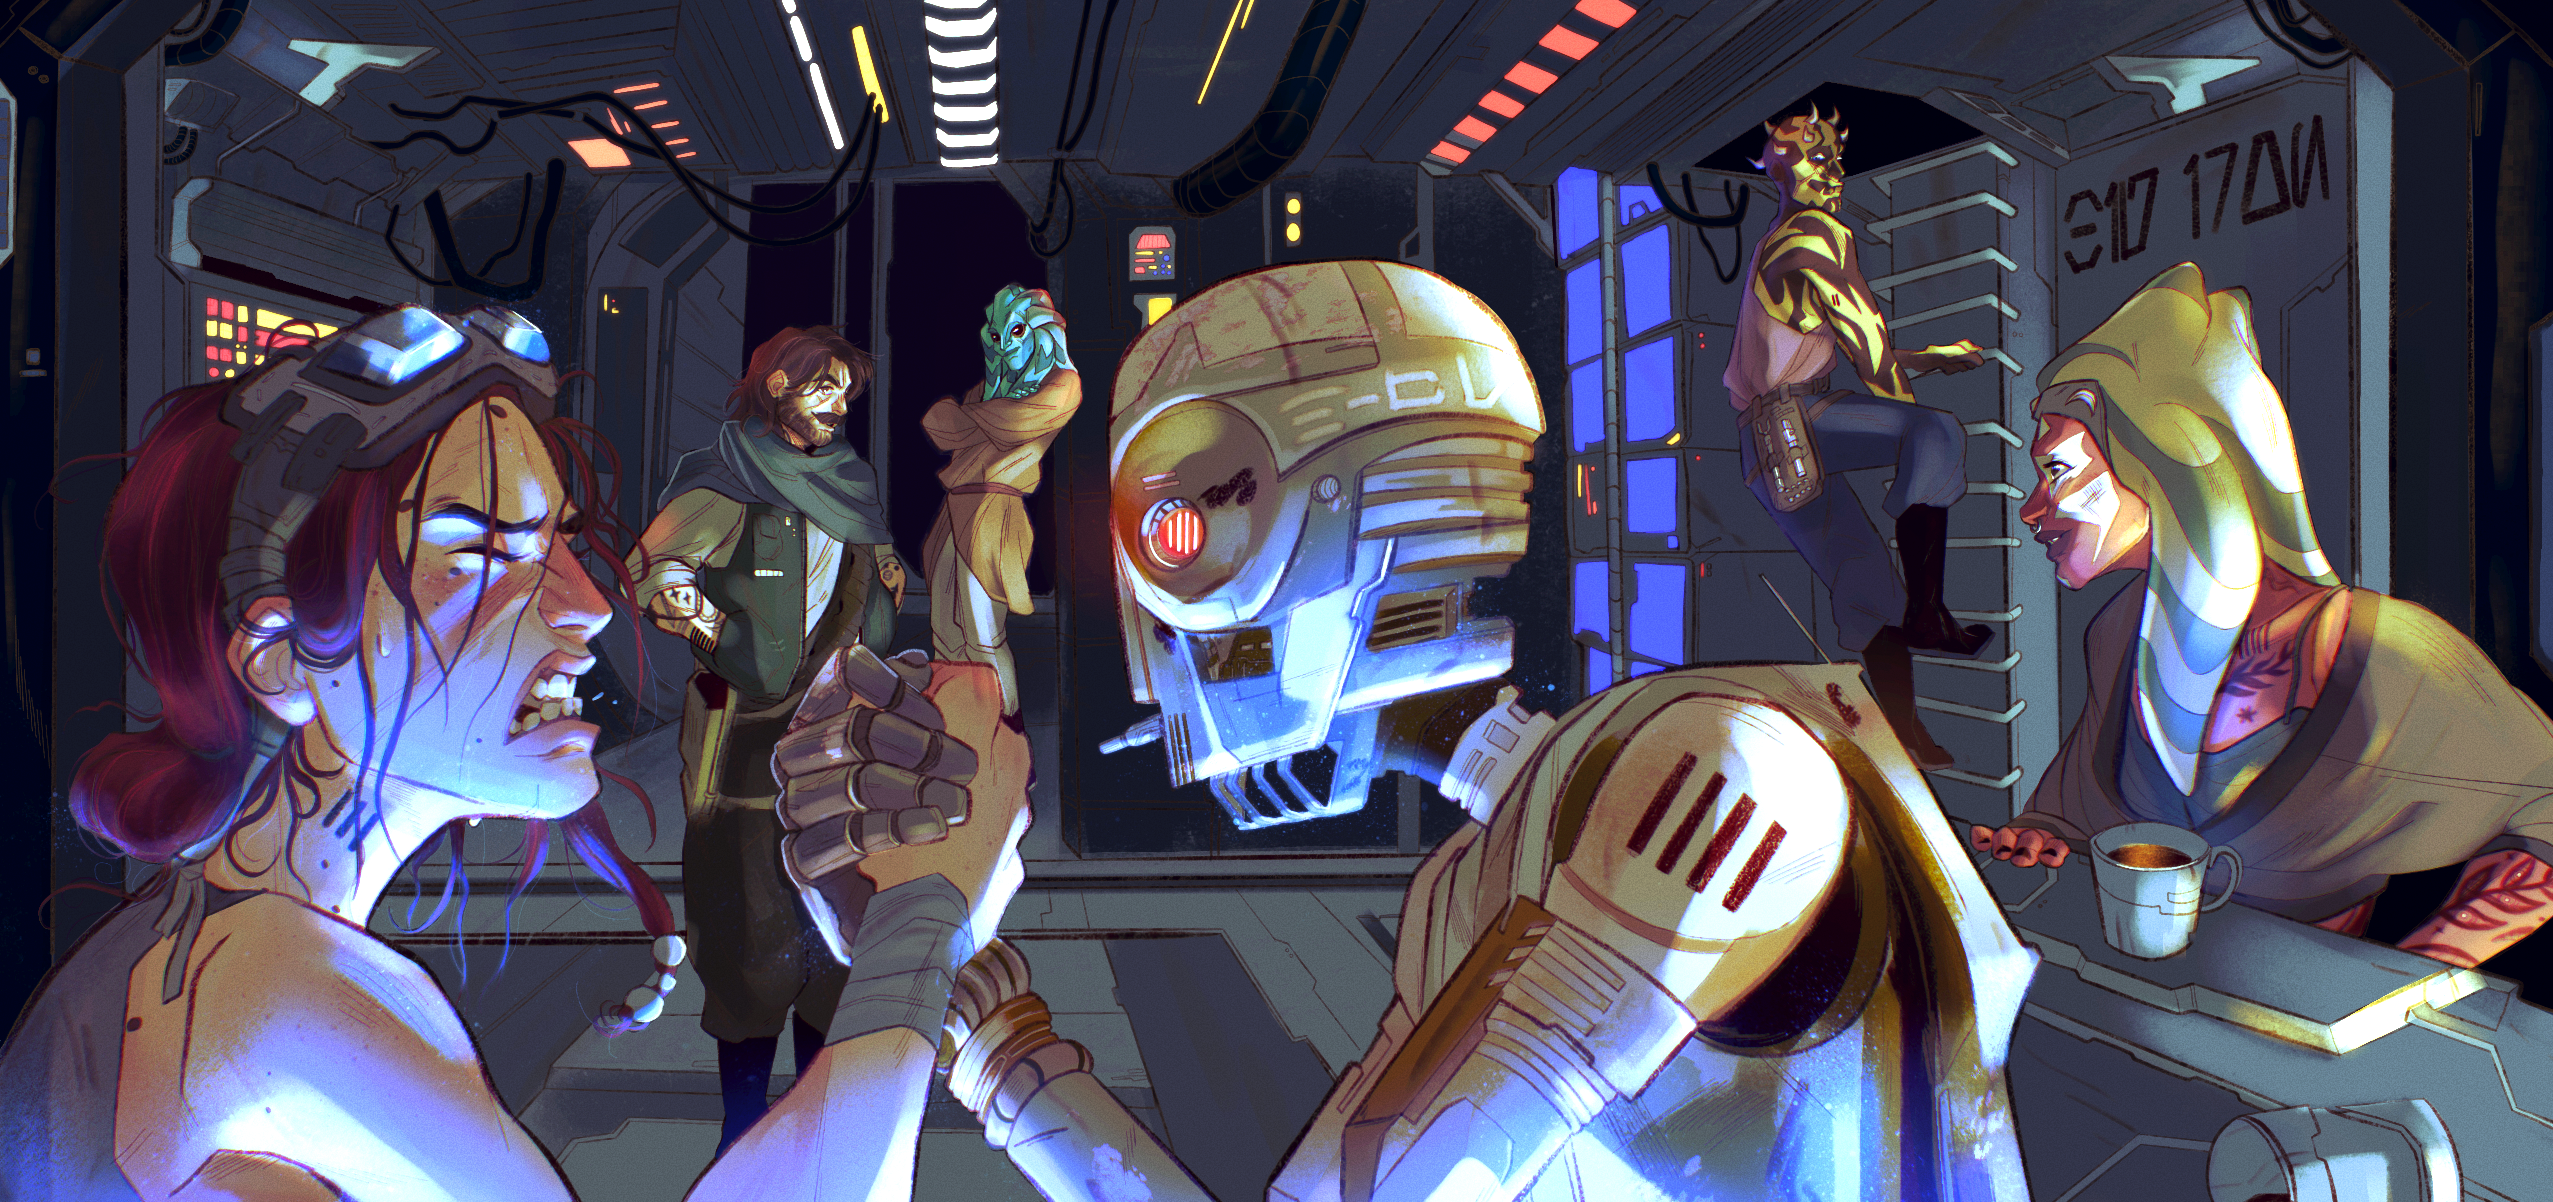 Inside of a dimly lit space ship, the woman farthest left with red hair strains to arm wrestle a moss green robot with glowing eyes in front of her, both underlit by blue hologram light. Behind them, a scruffy man in green and an aquatic being with long t